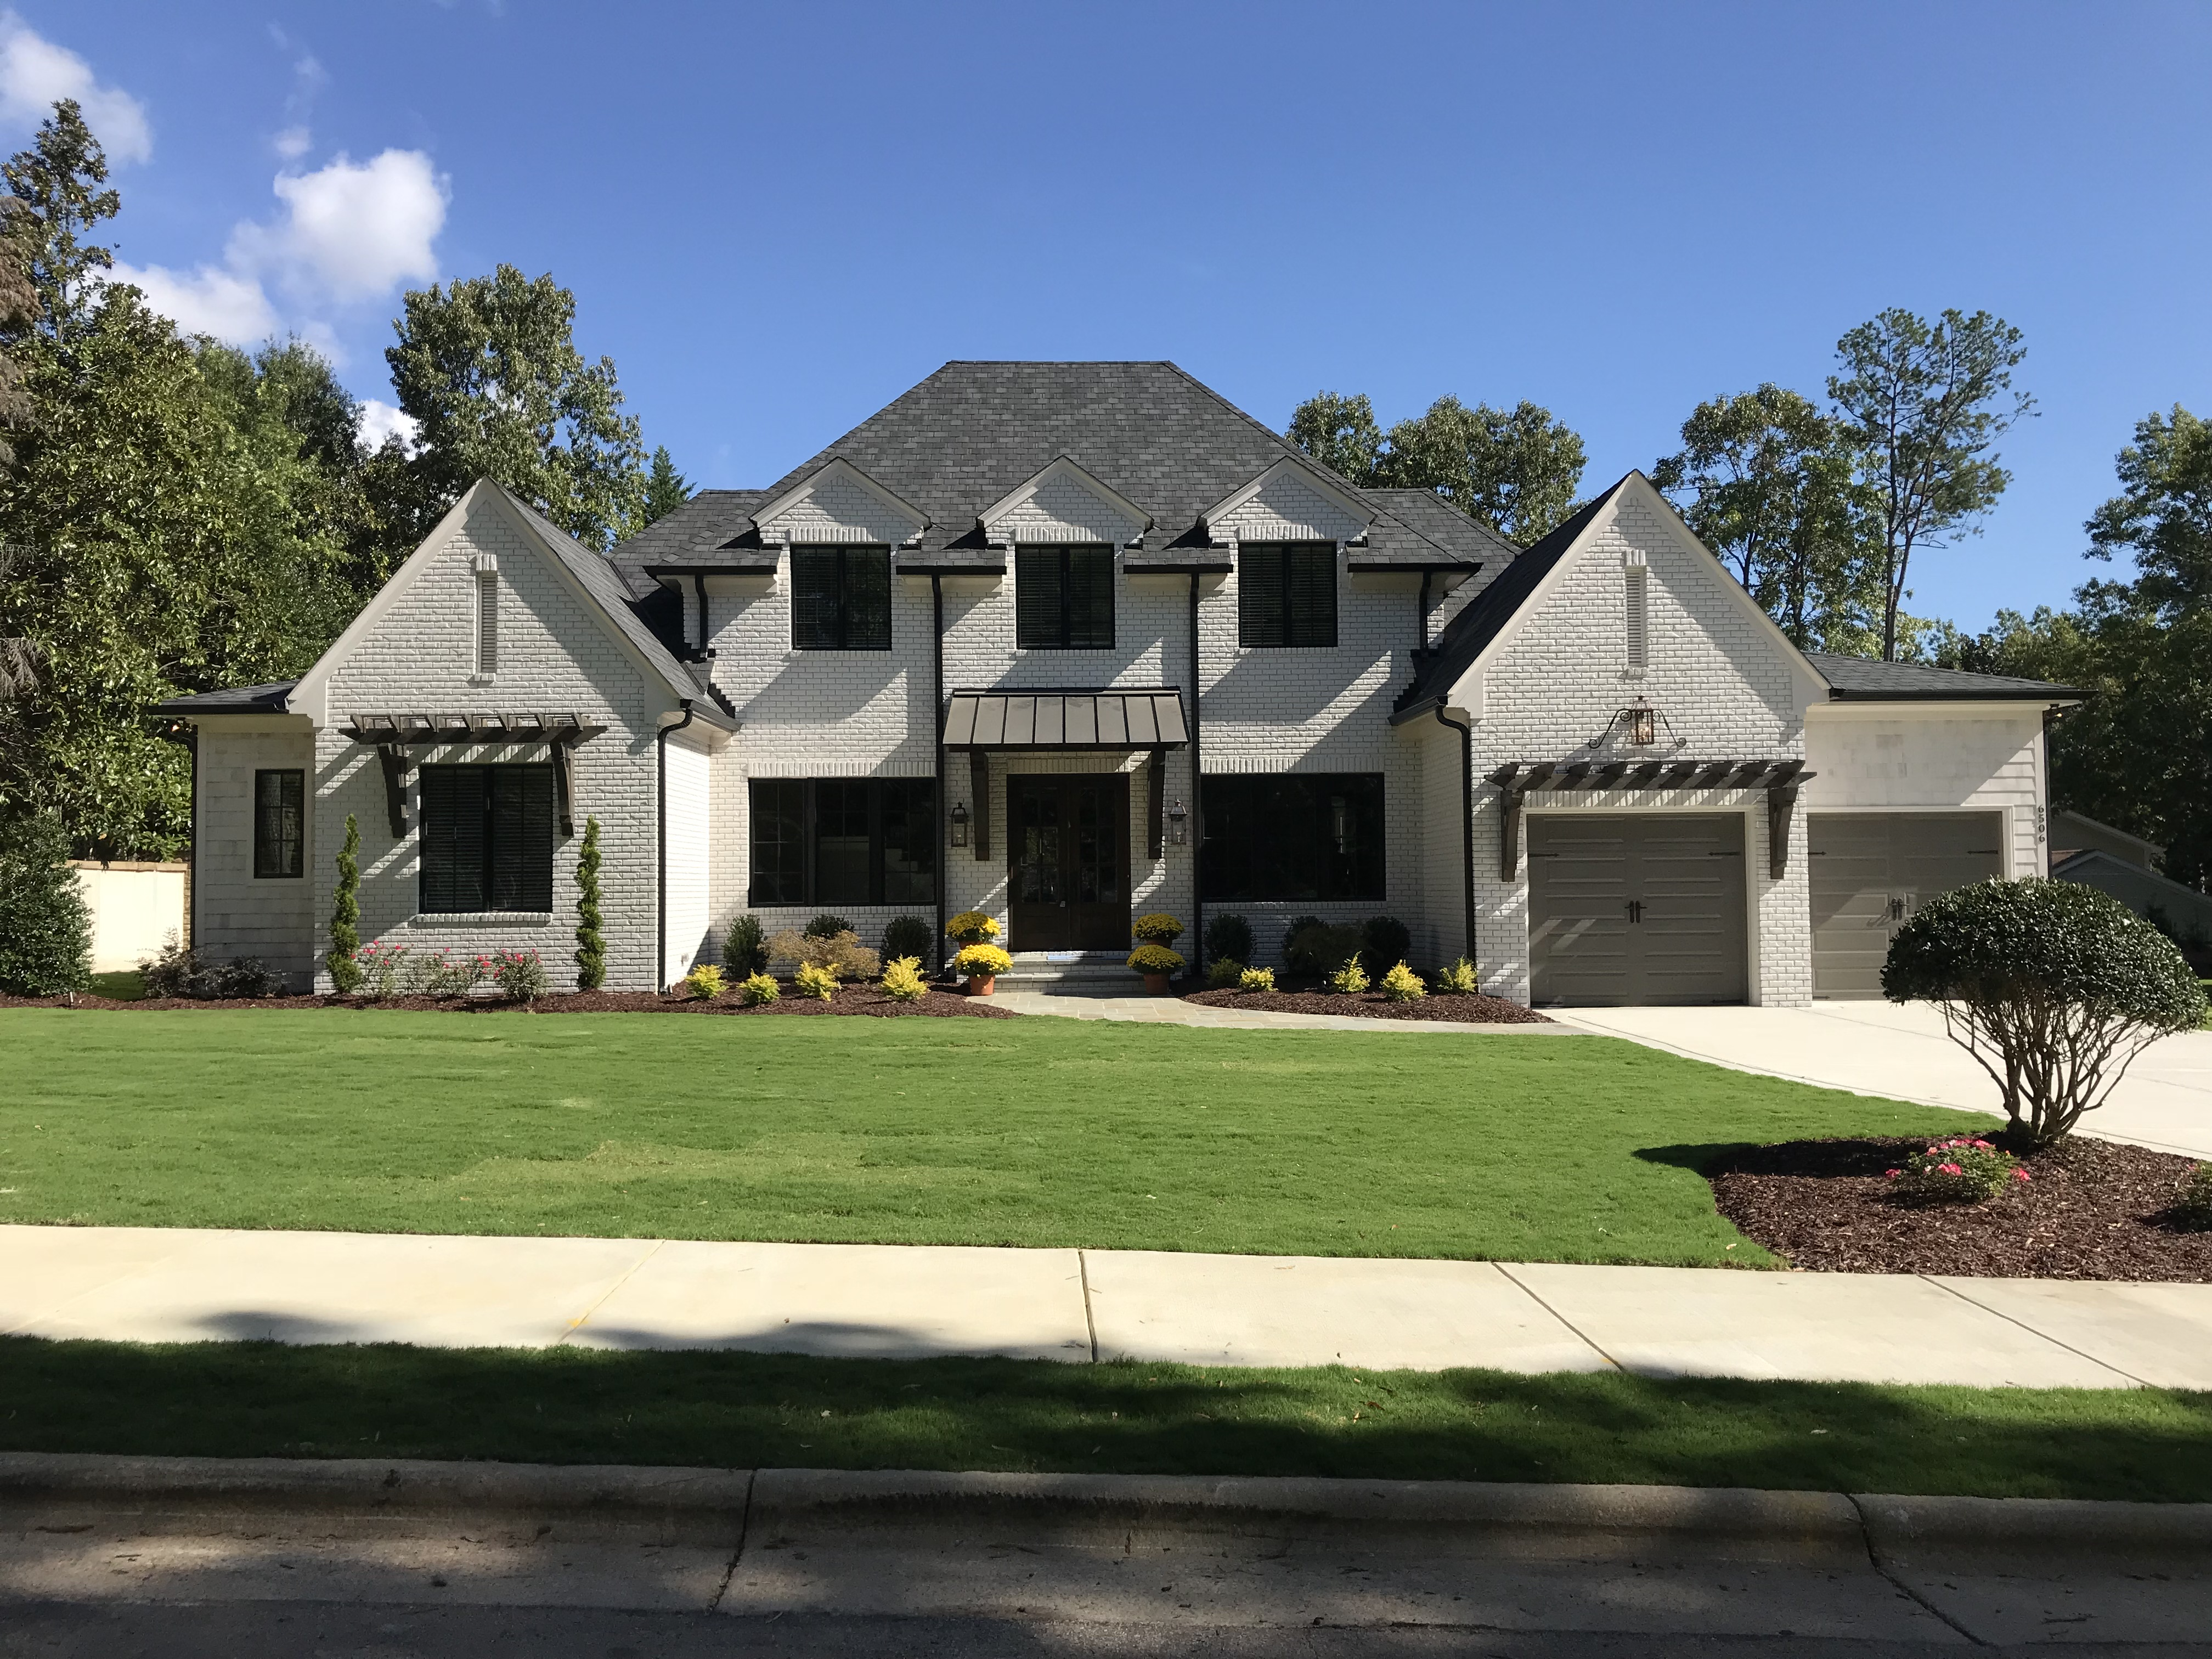 <div class='meta'><div class='origin-logo' data-origin='none'></div><span class='caption-text' data-credit='WTVD photo/Shawn Replogle'>6506 New Market Way, Raleigh, NC - $1.25 million by Raleigh Custom Homes</span></div>